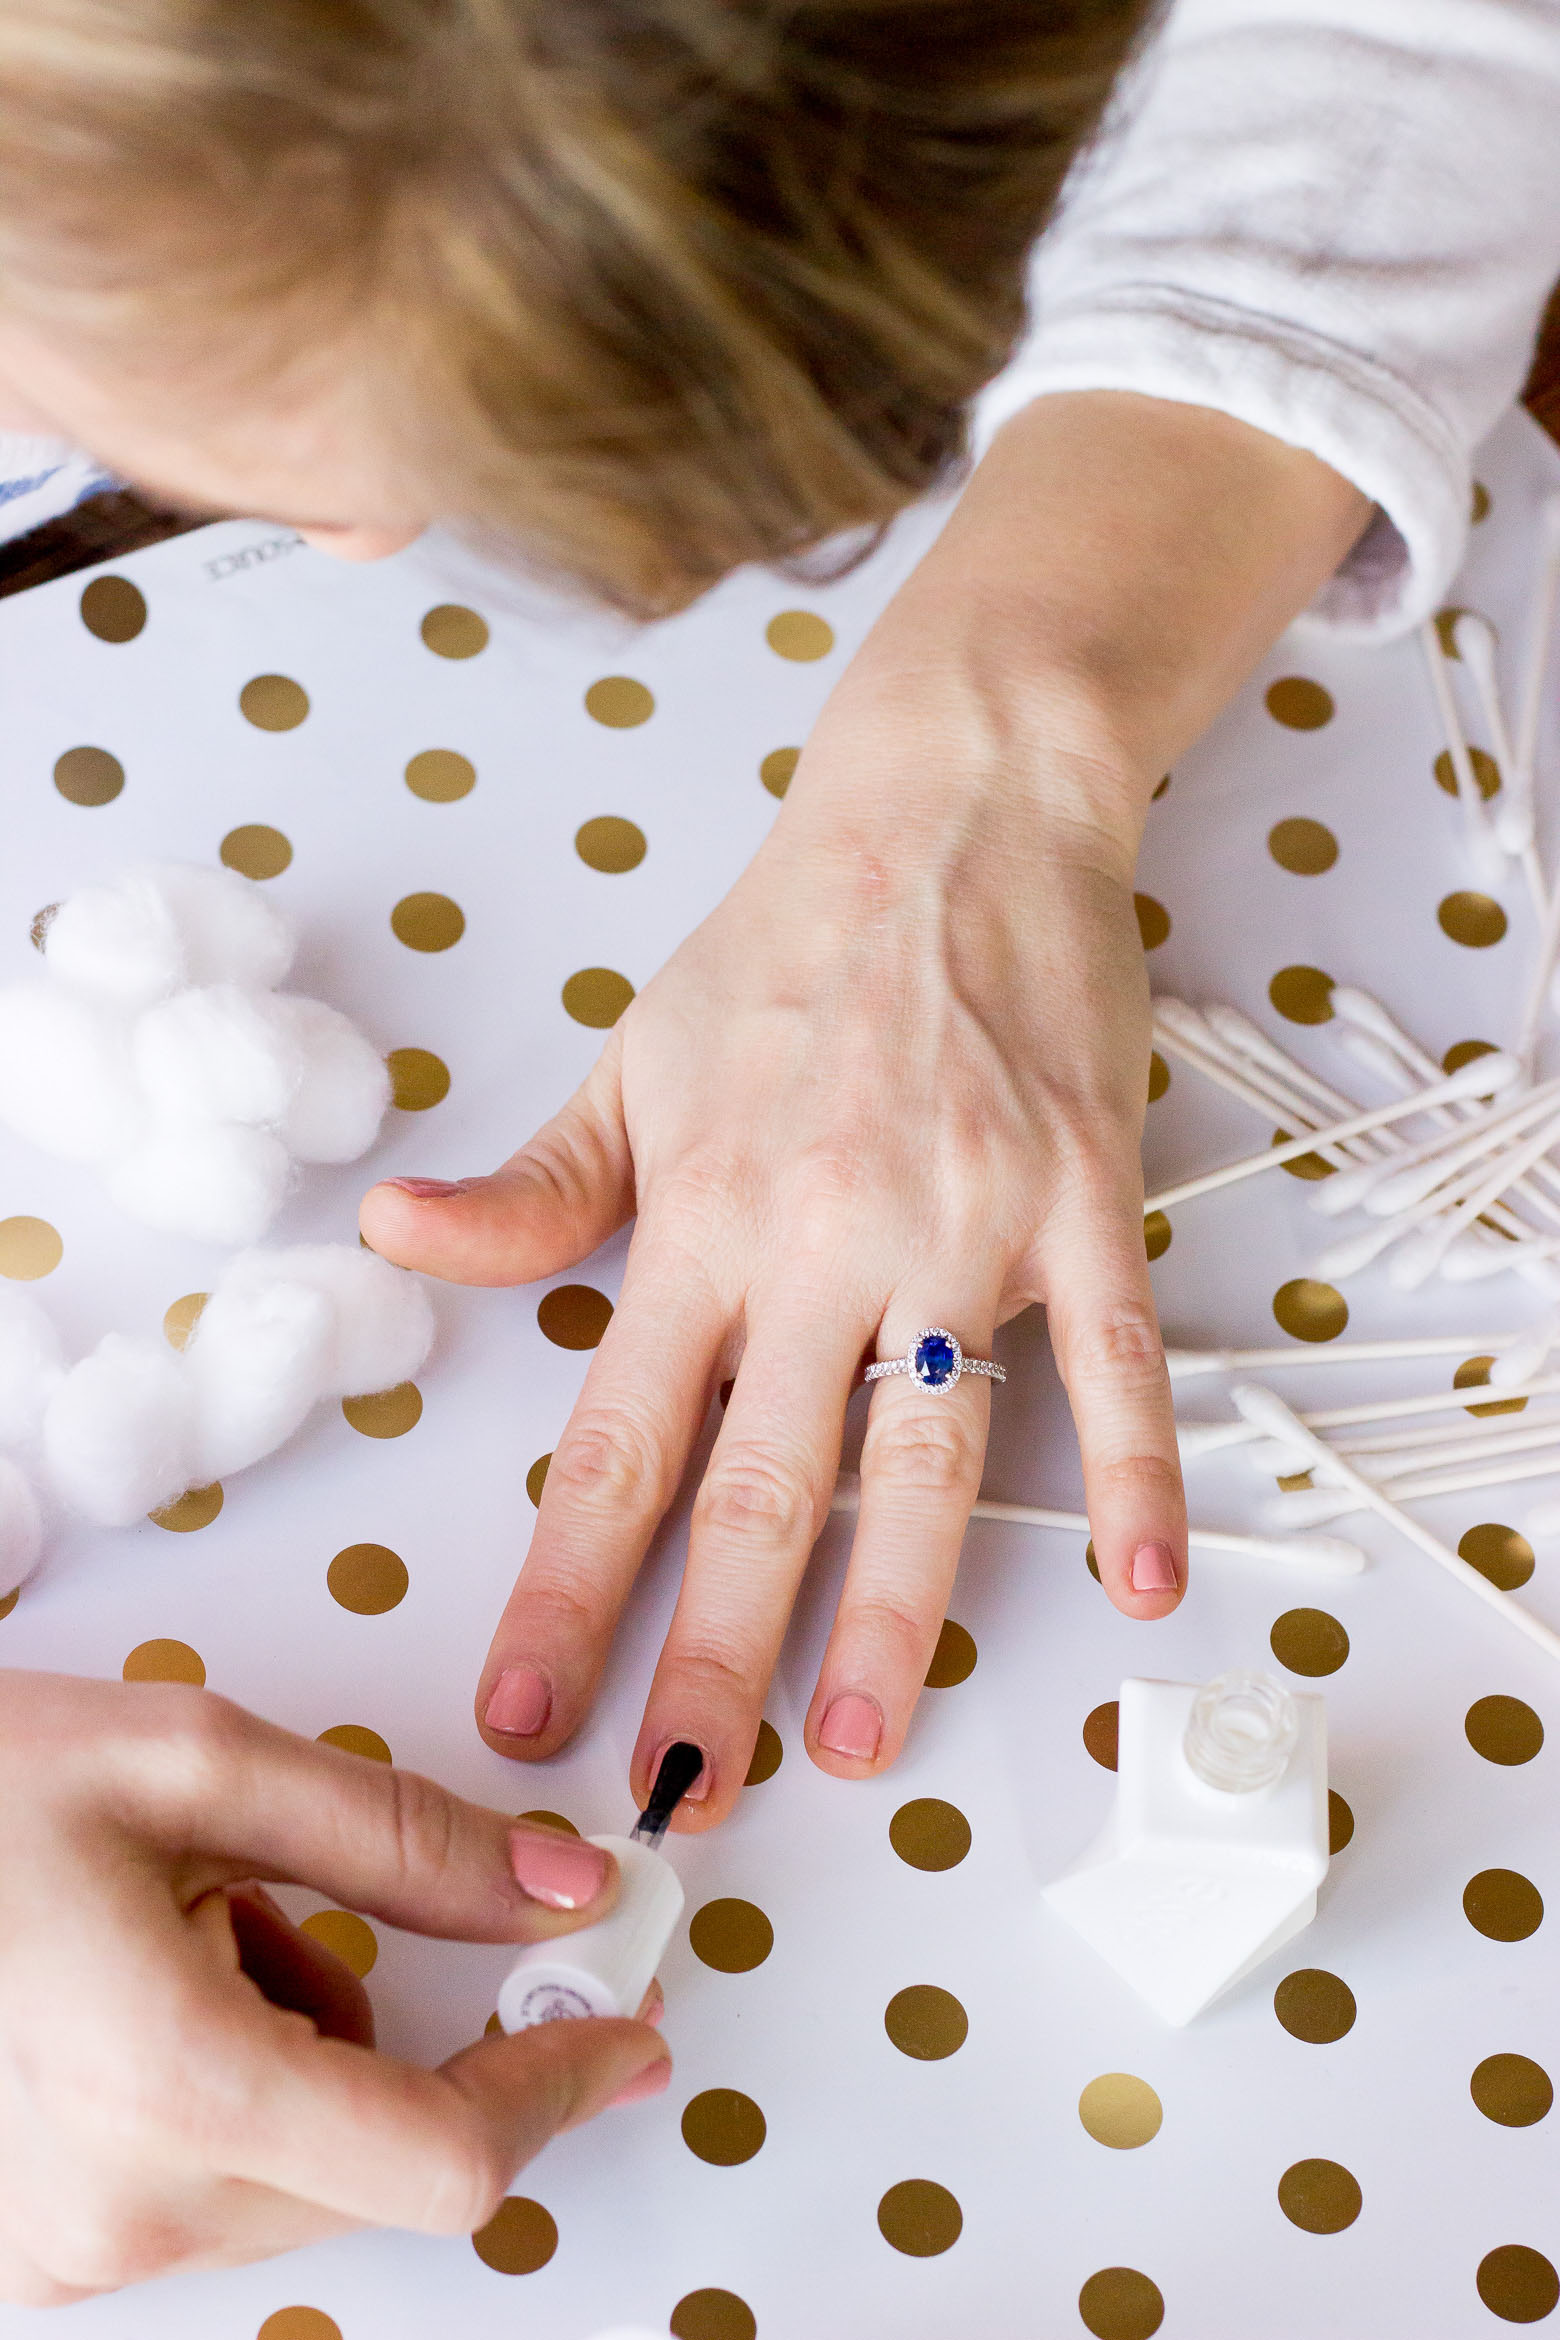 Sapphire engagement ring worn by Atlanta blogger Elise Giannasi